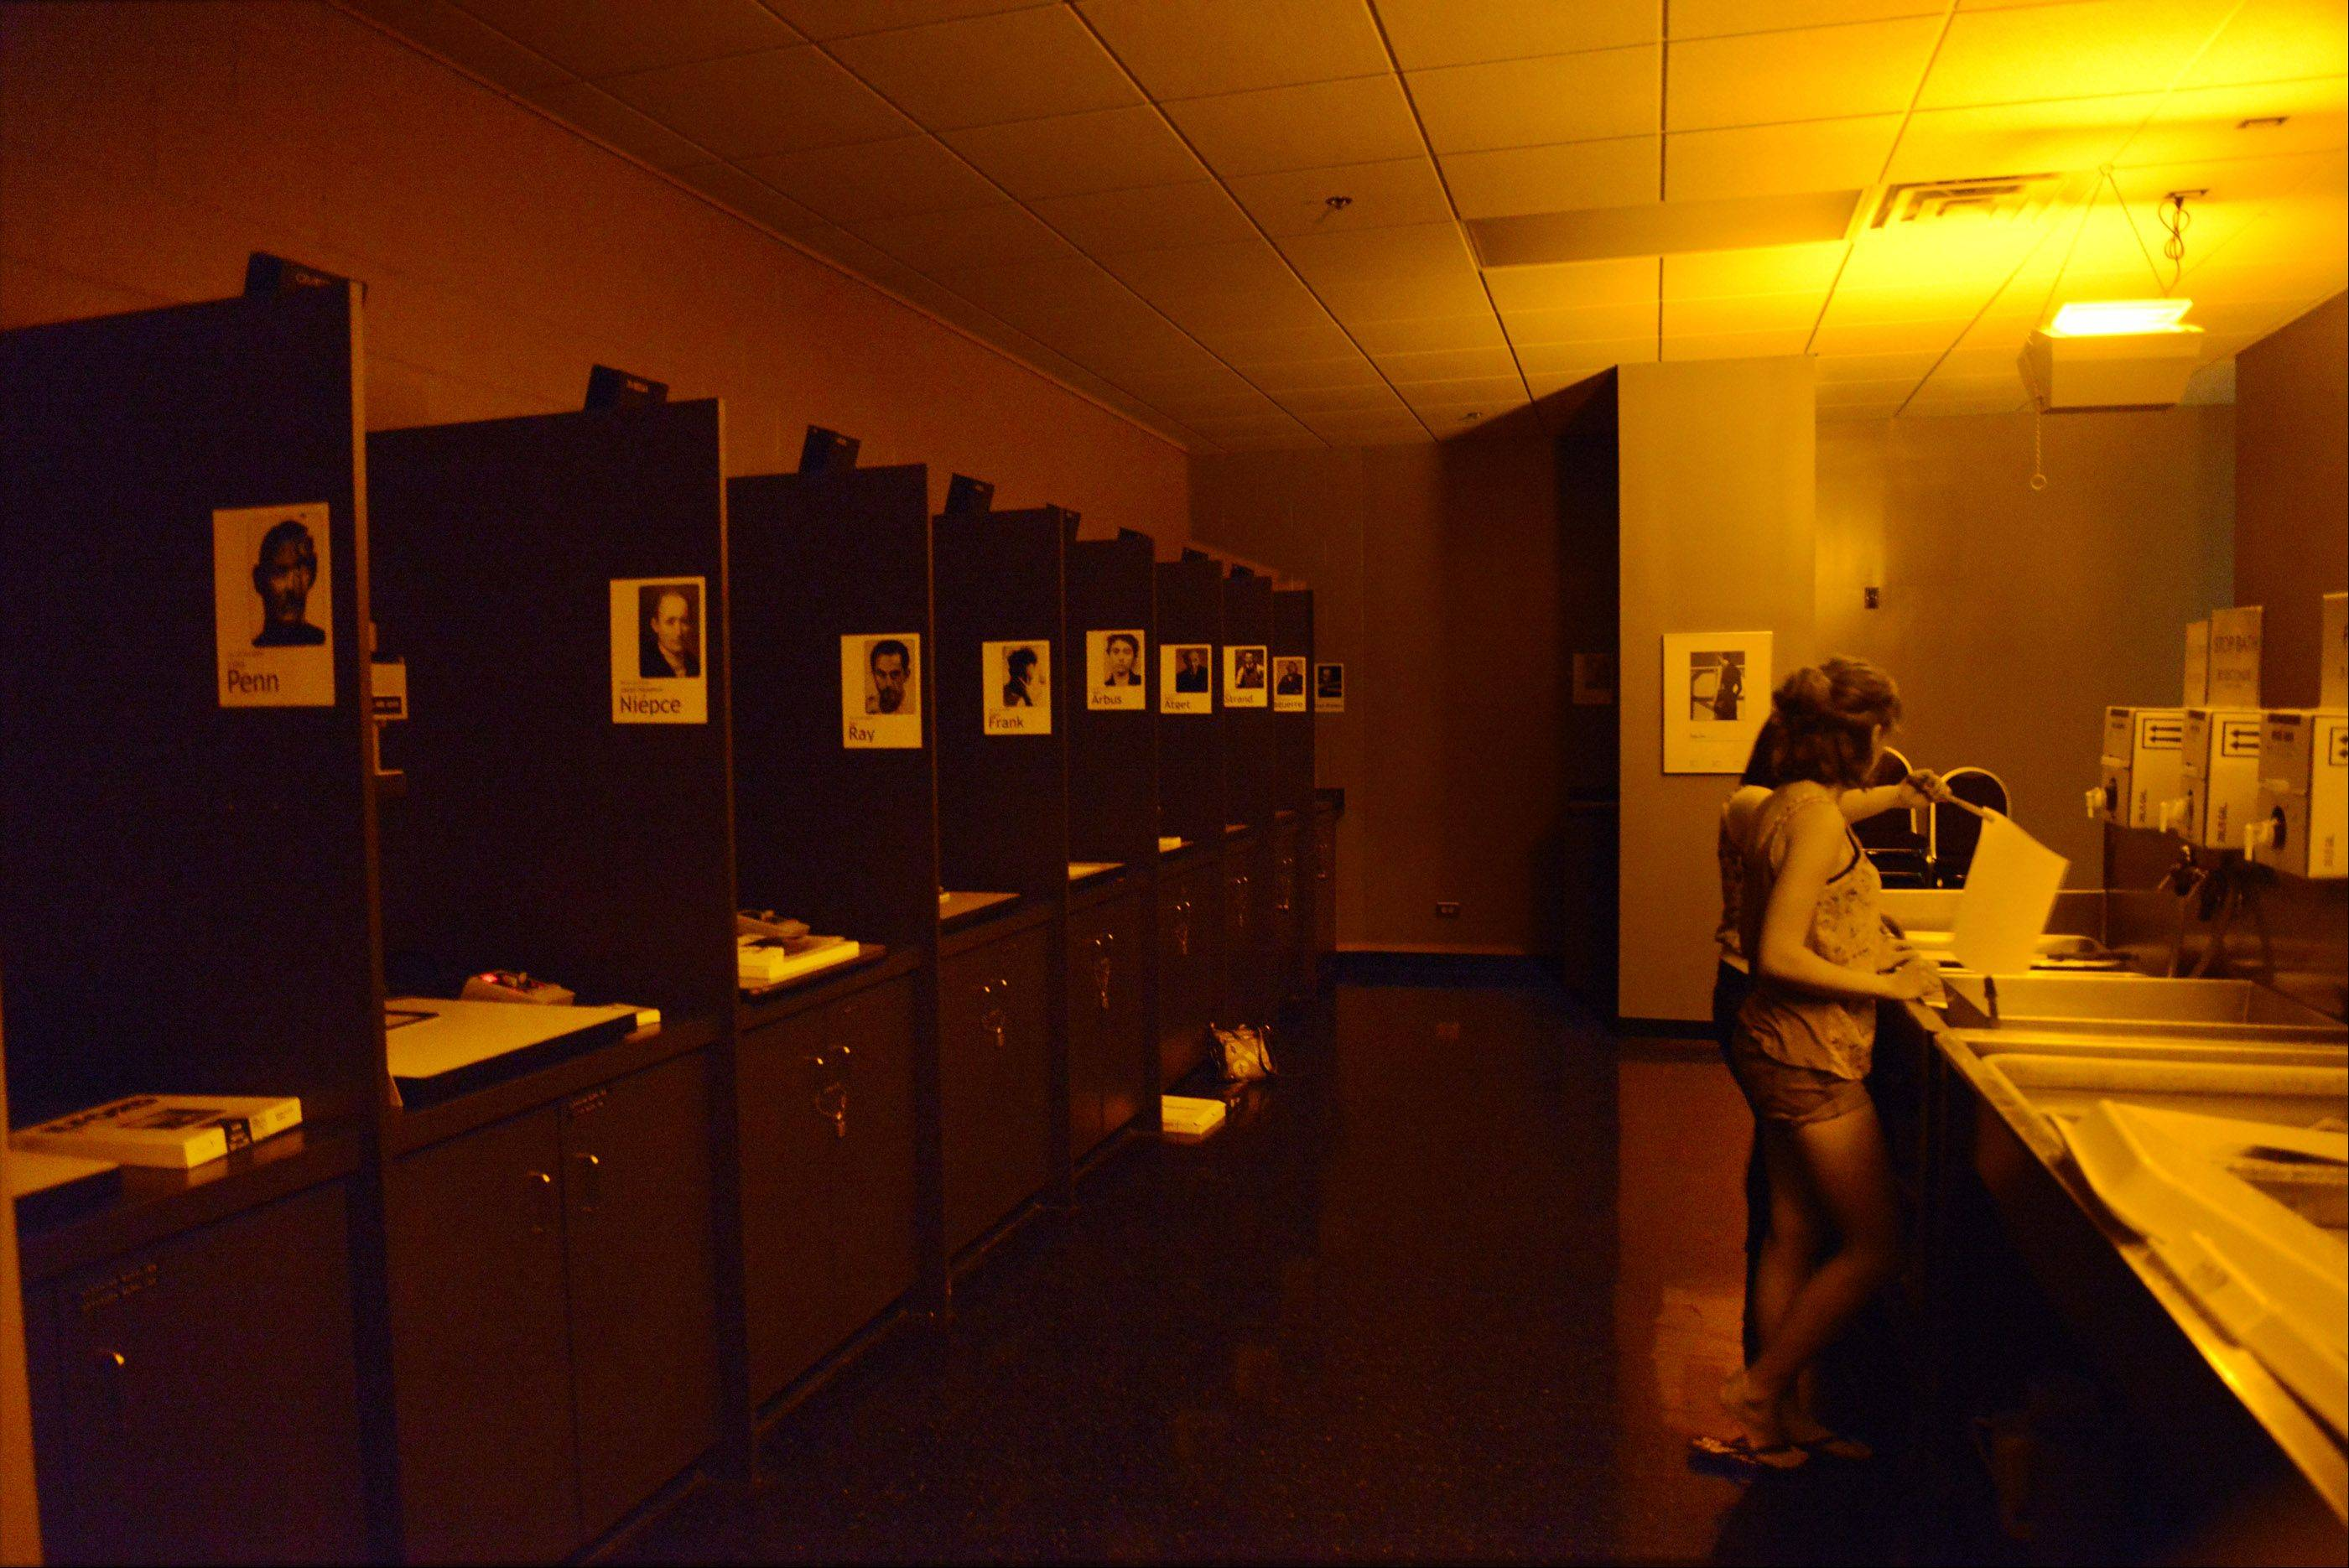 Under the warm, indirect darkroom lights, ECC photography students work with prints in chemical trays in the darkroom. At left is a row of enlargers used for printing.